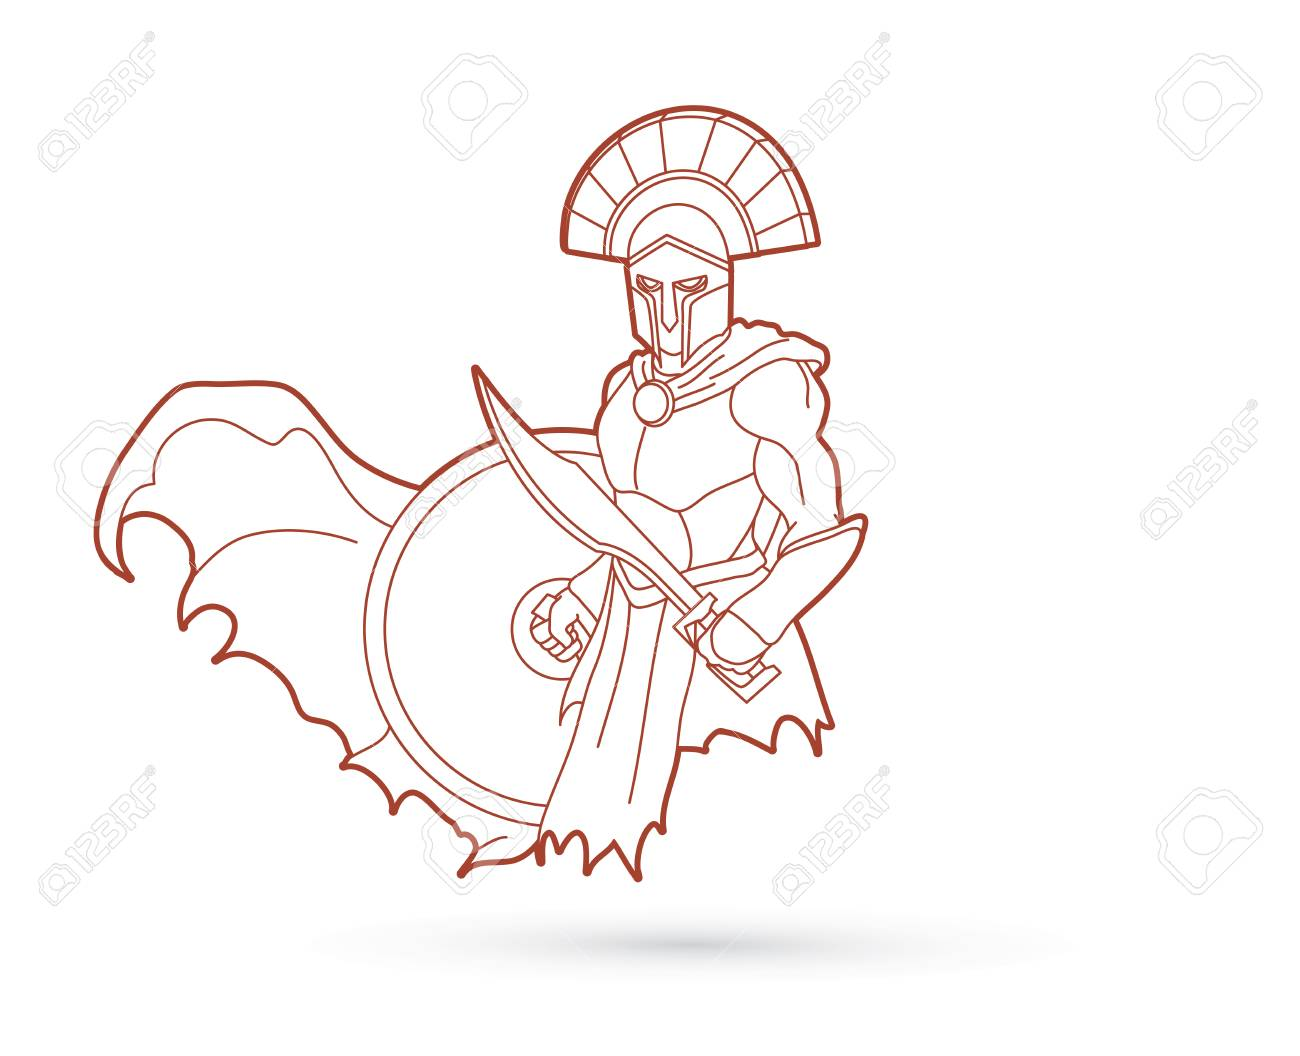 1300x1056 Angry Spartan Warrior With Sword And Shield Outline Graphic Vector